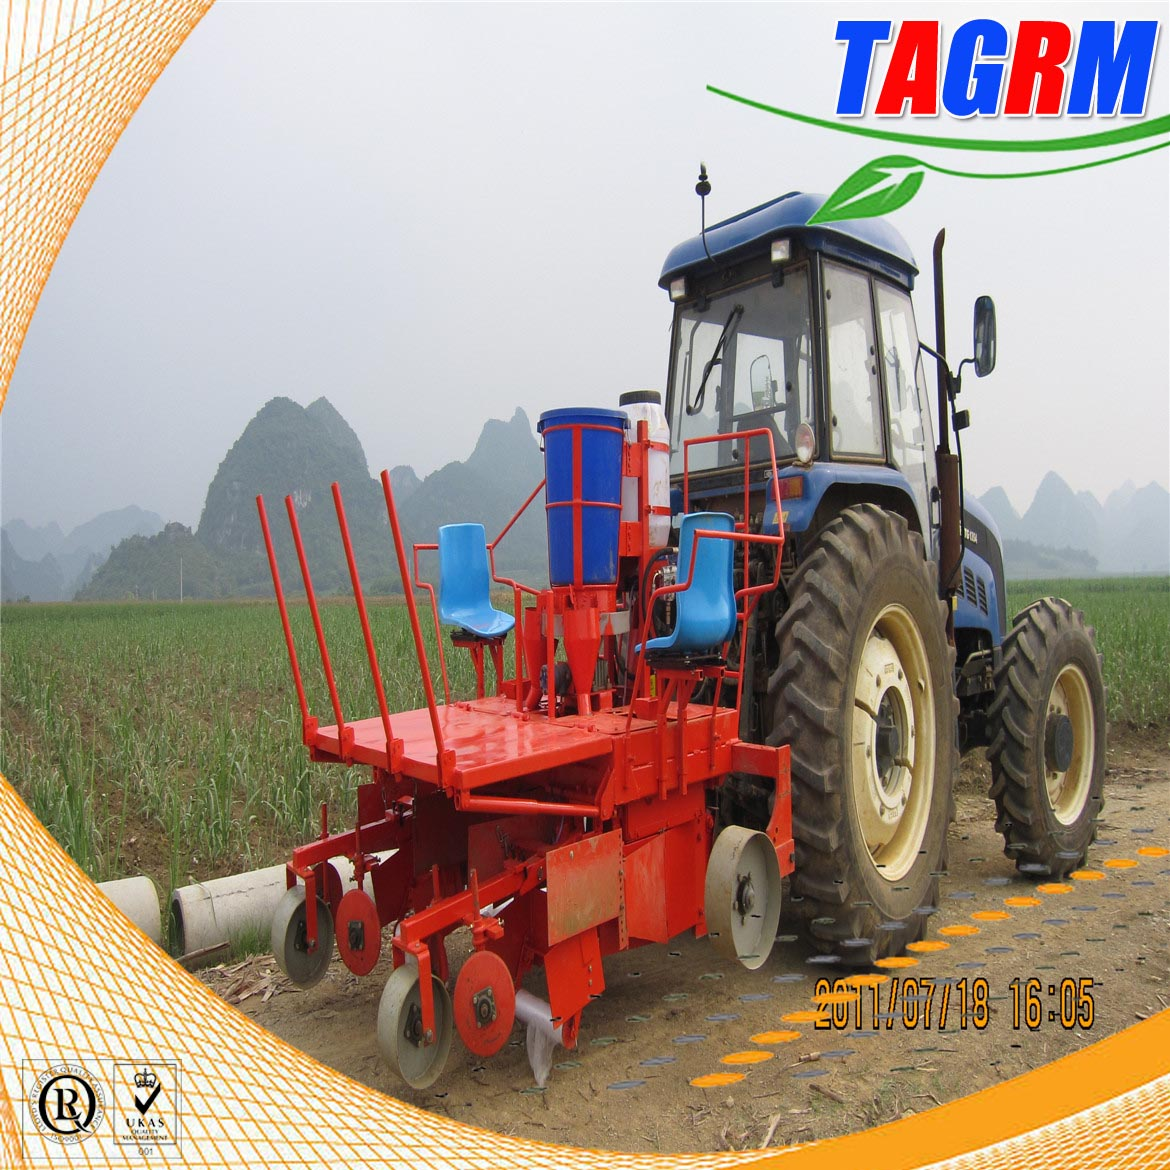 TAGRM newest 2CZ-2 sugarcane planting machine,sugarcane seed planter